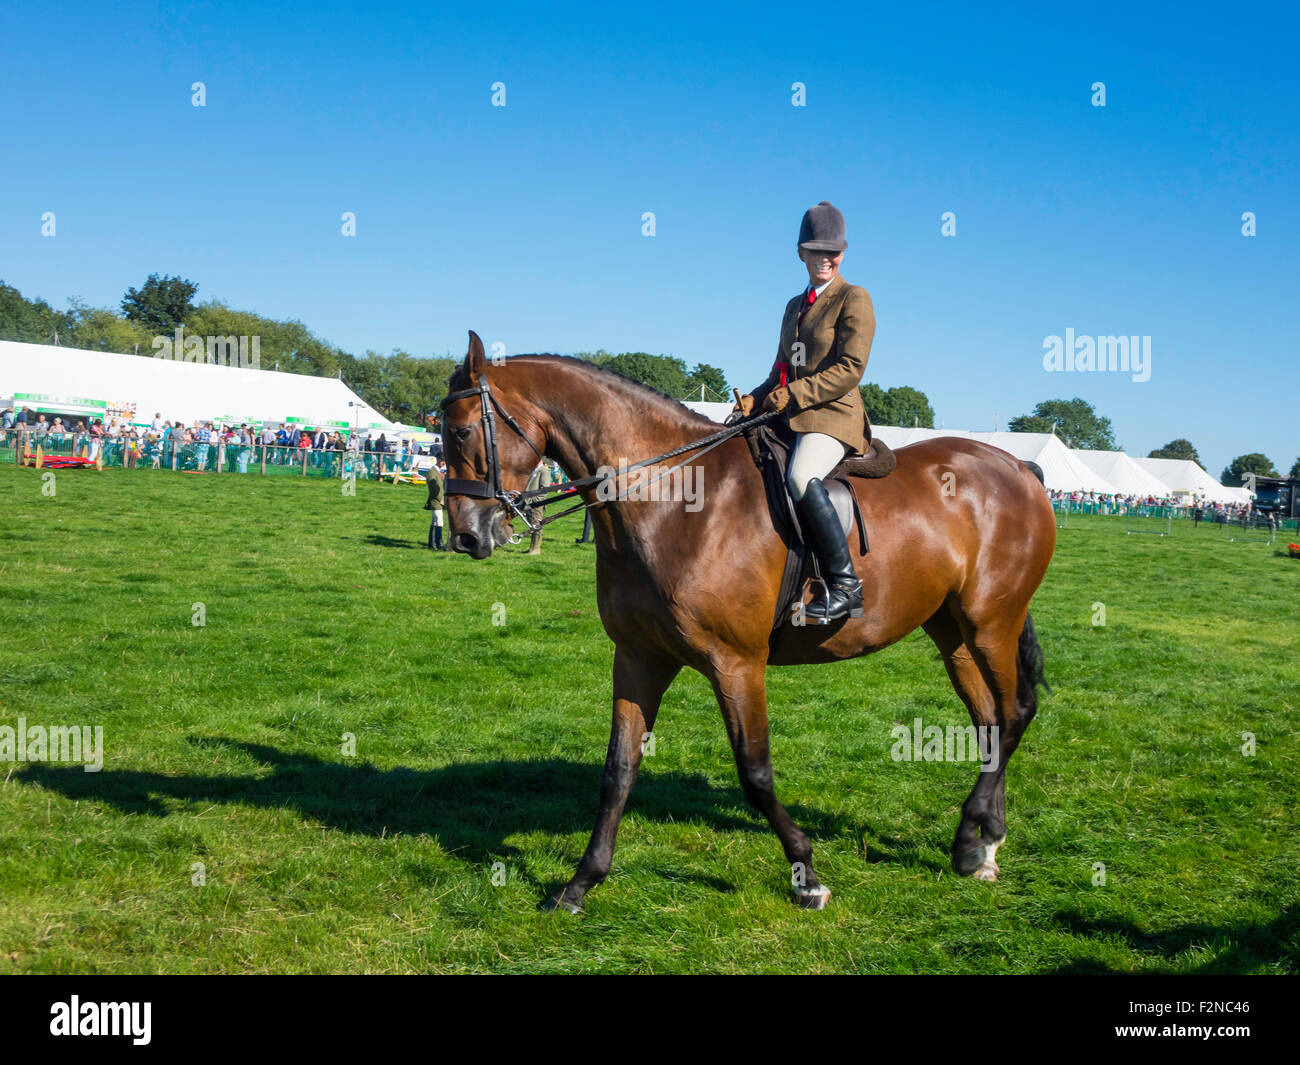 A Prize winning Cleveland Bay Horse ridden by Ms Anne Hebron at the Stokesley Agricultural Show 2015 - Stock Image